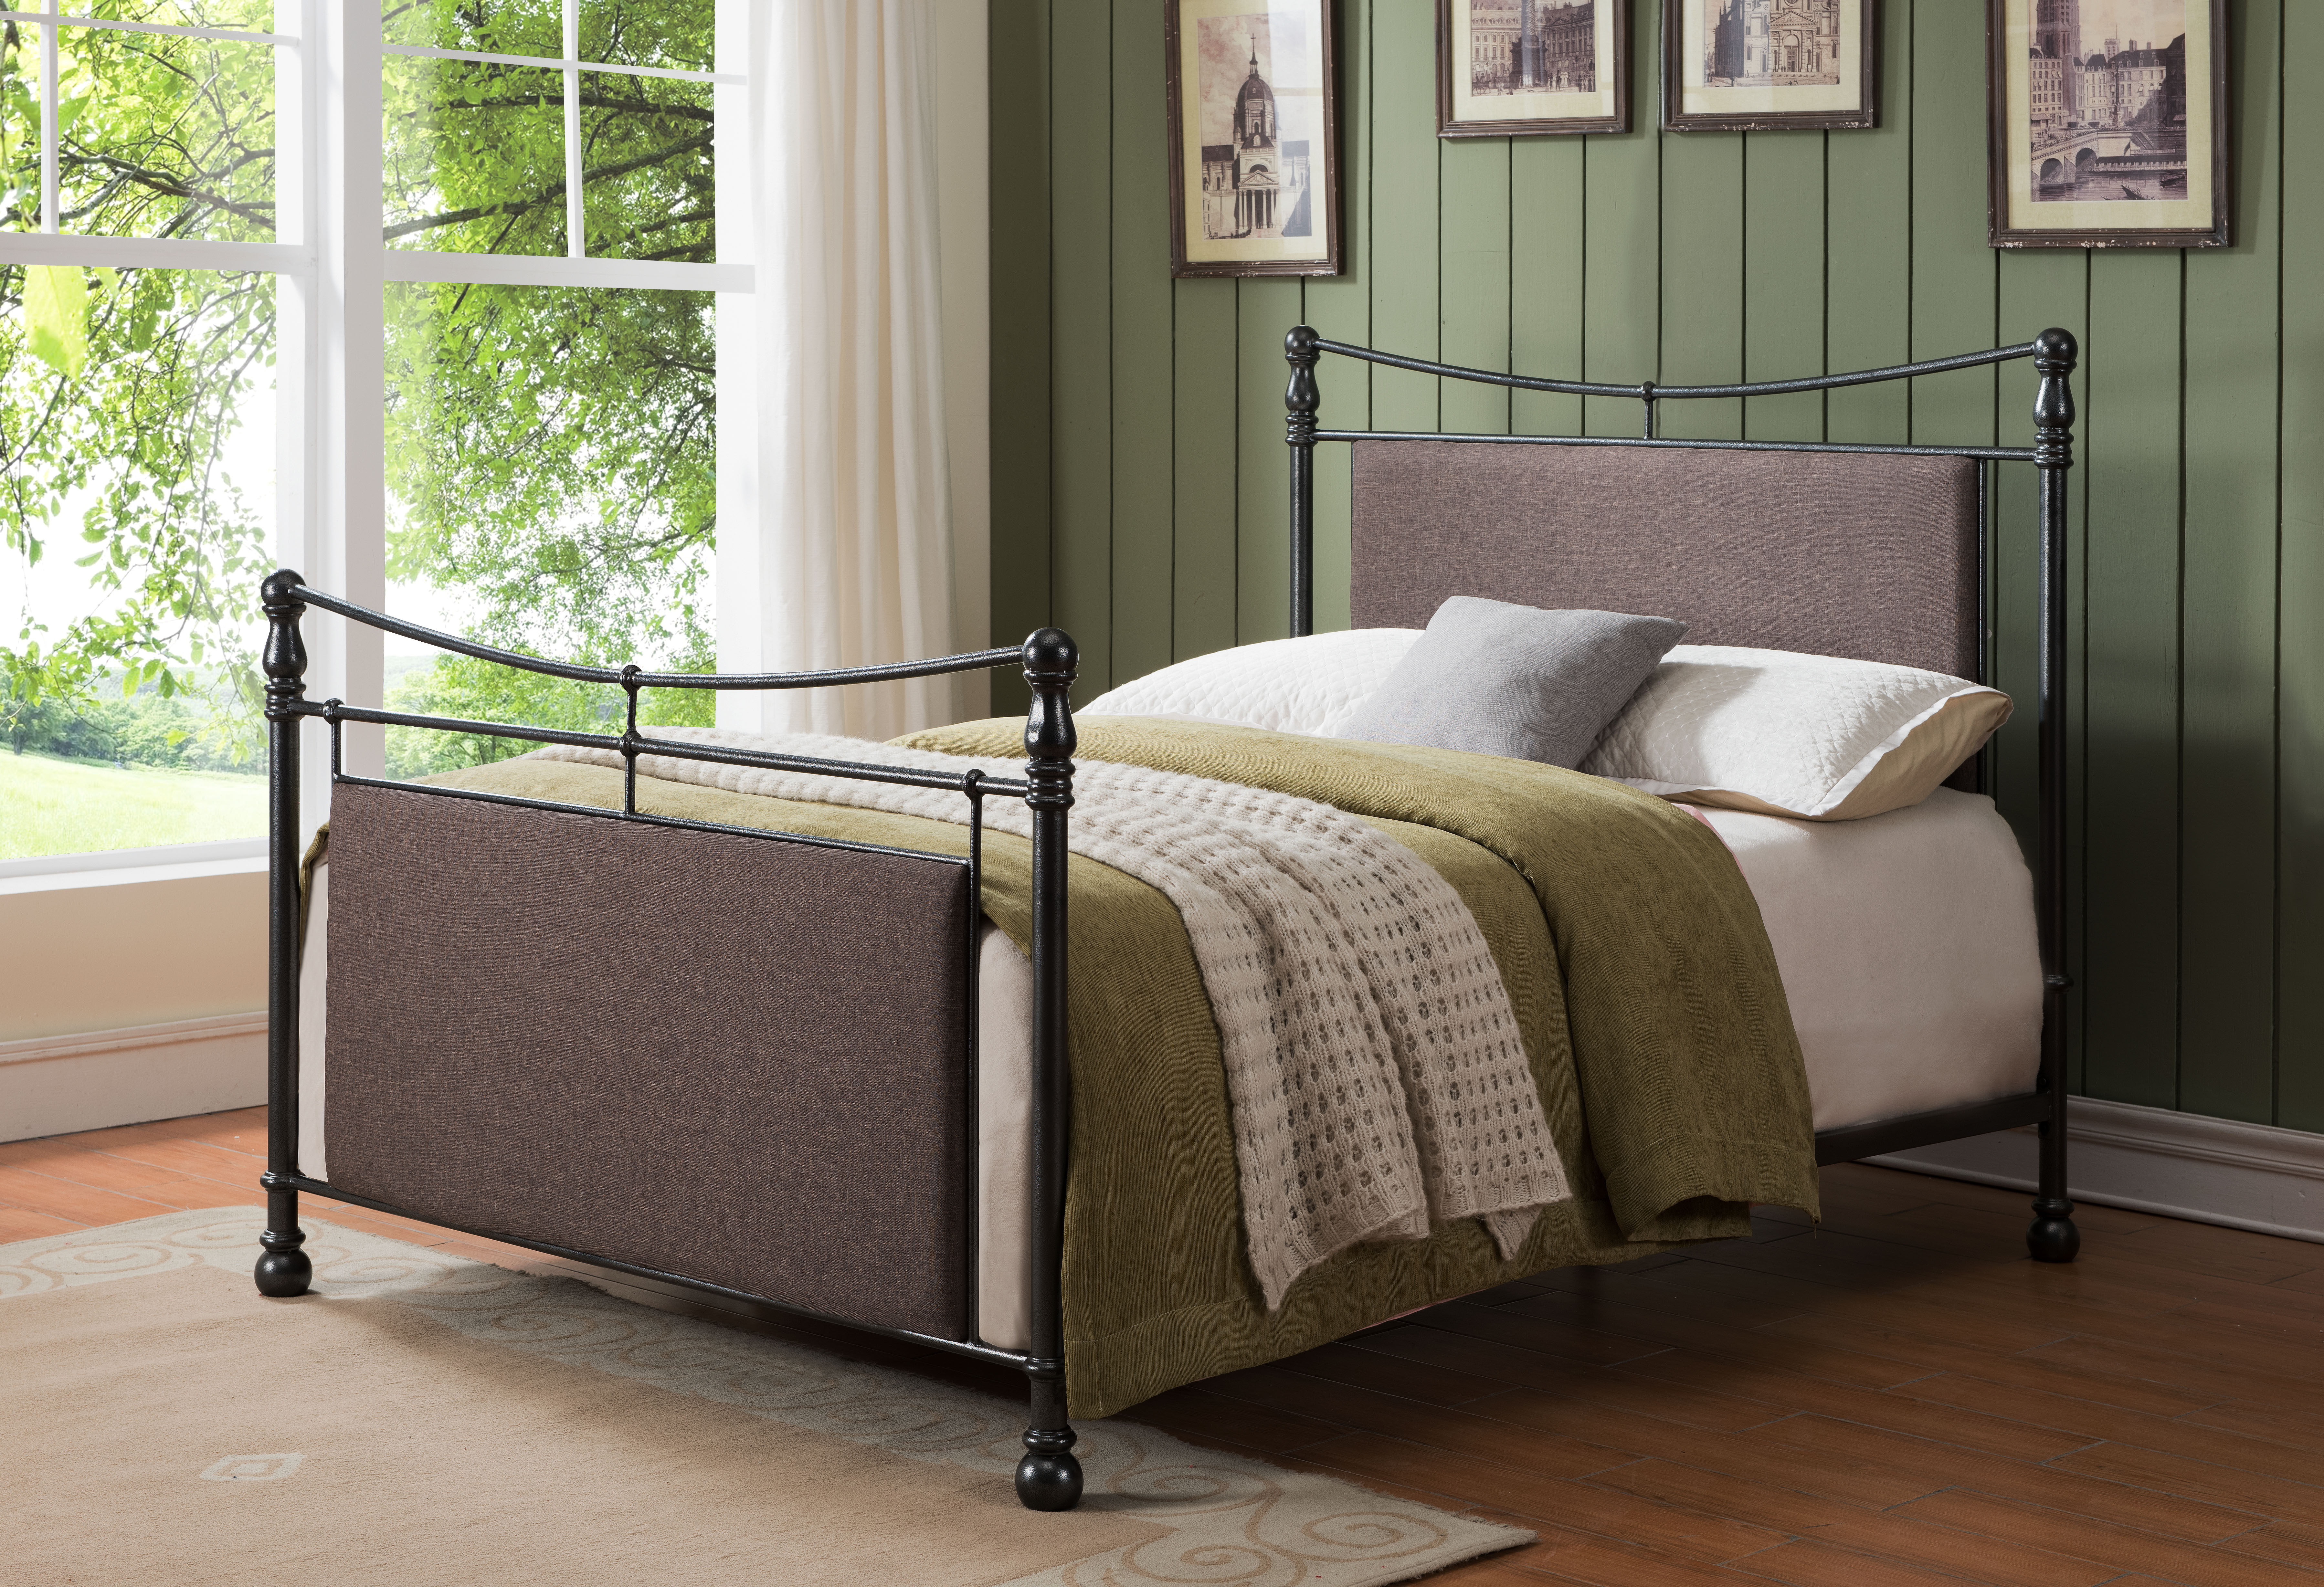 Image is loading pewter brown queen size upholstered fabric metal bed